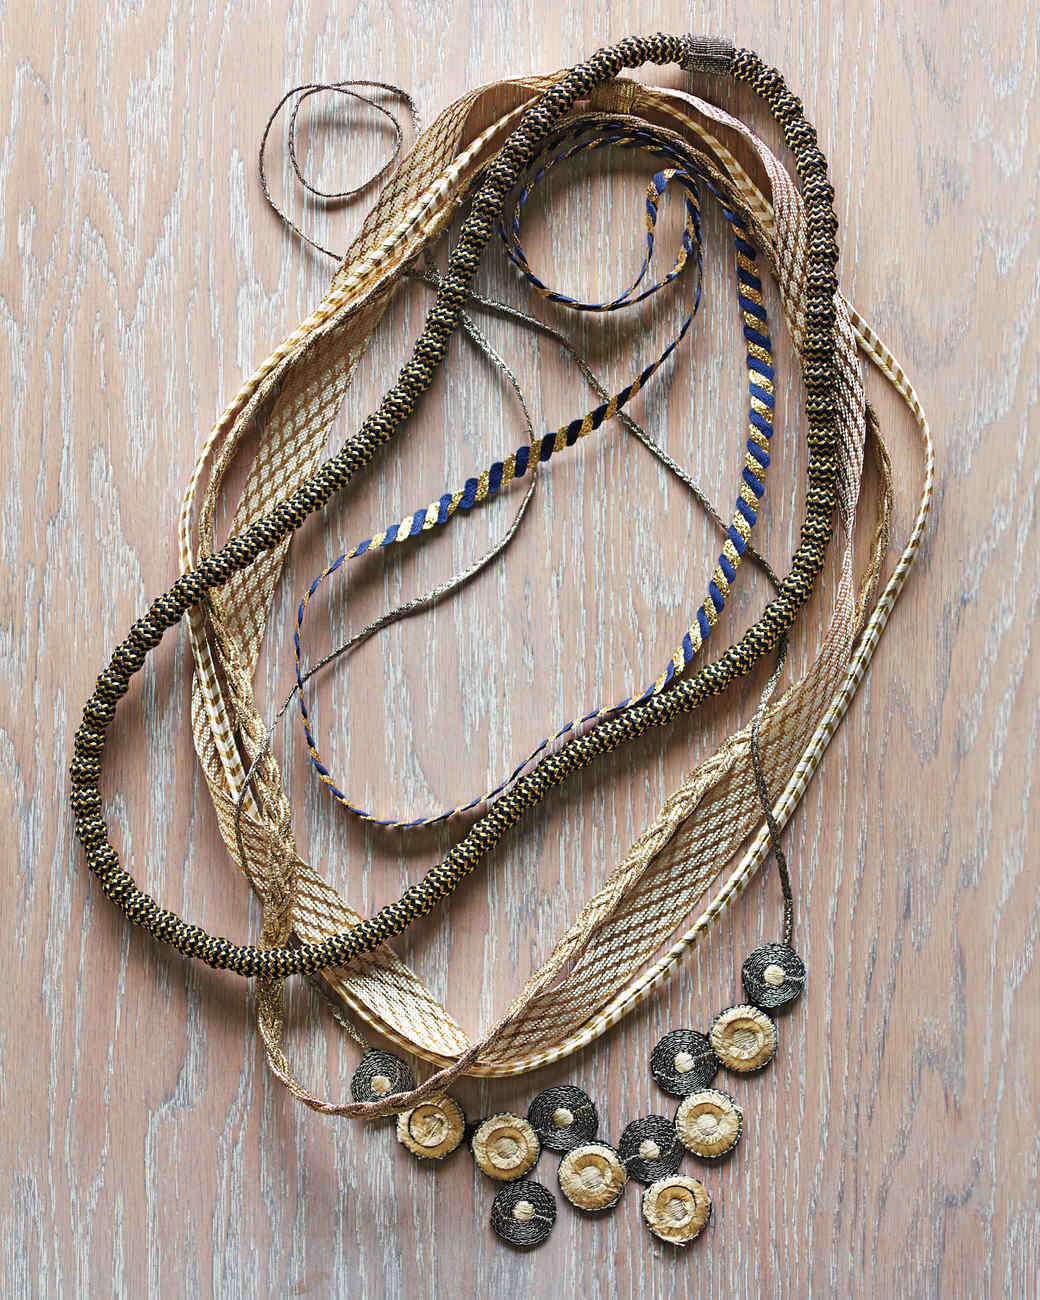 group-necklaces-107-mld109761.jpg